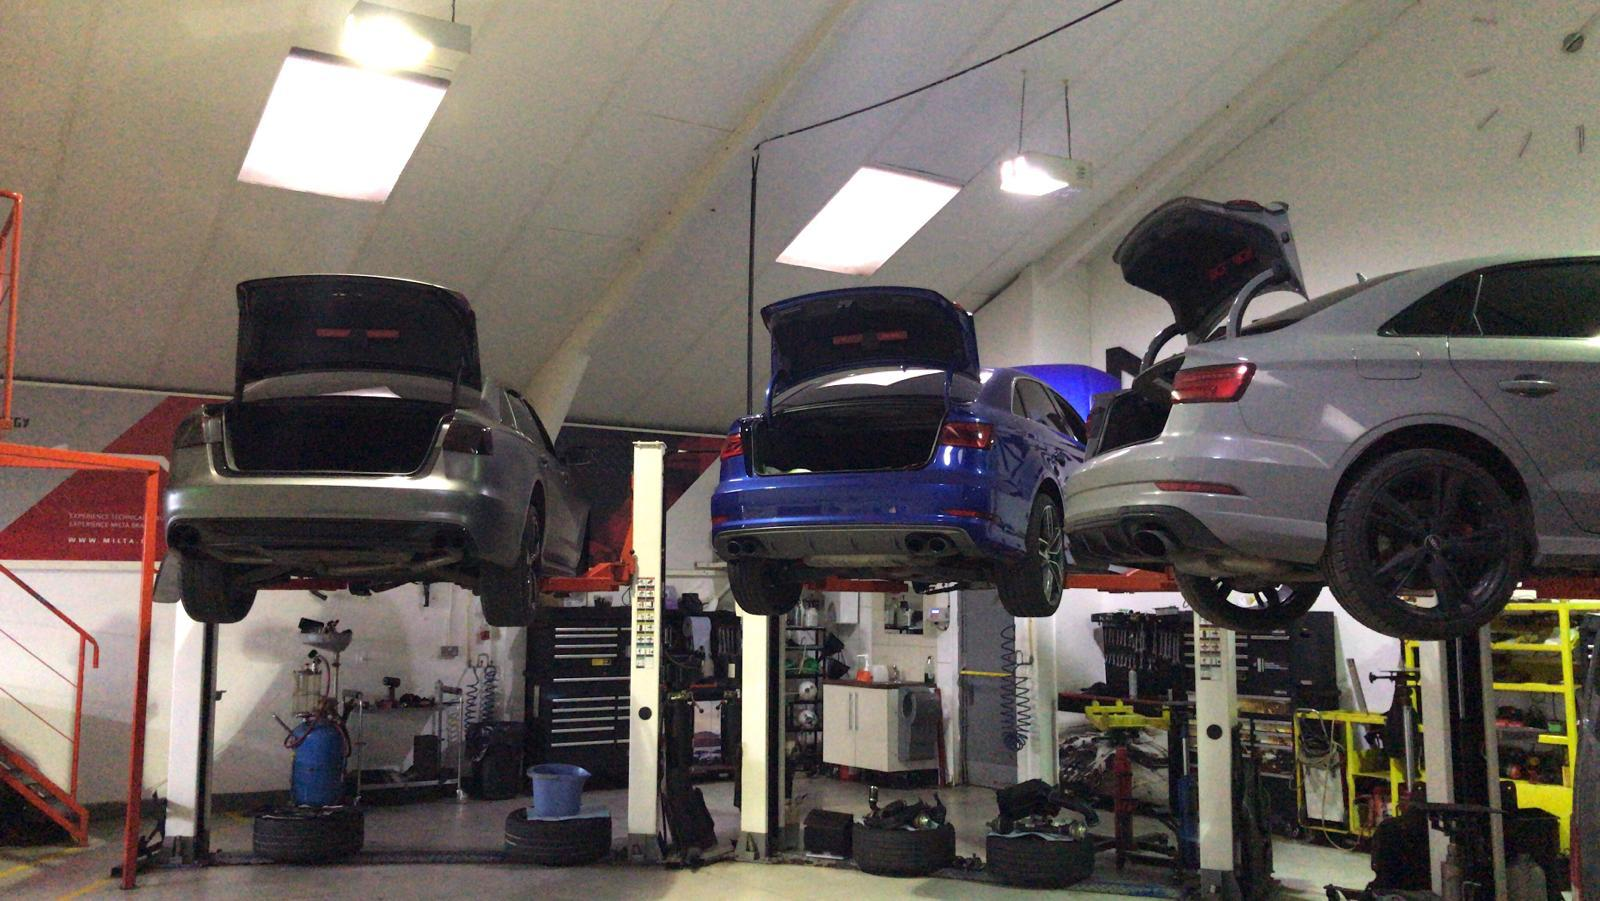 as usual - full house- busy replacing gearboxes for a range of audi models